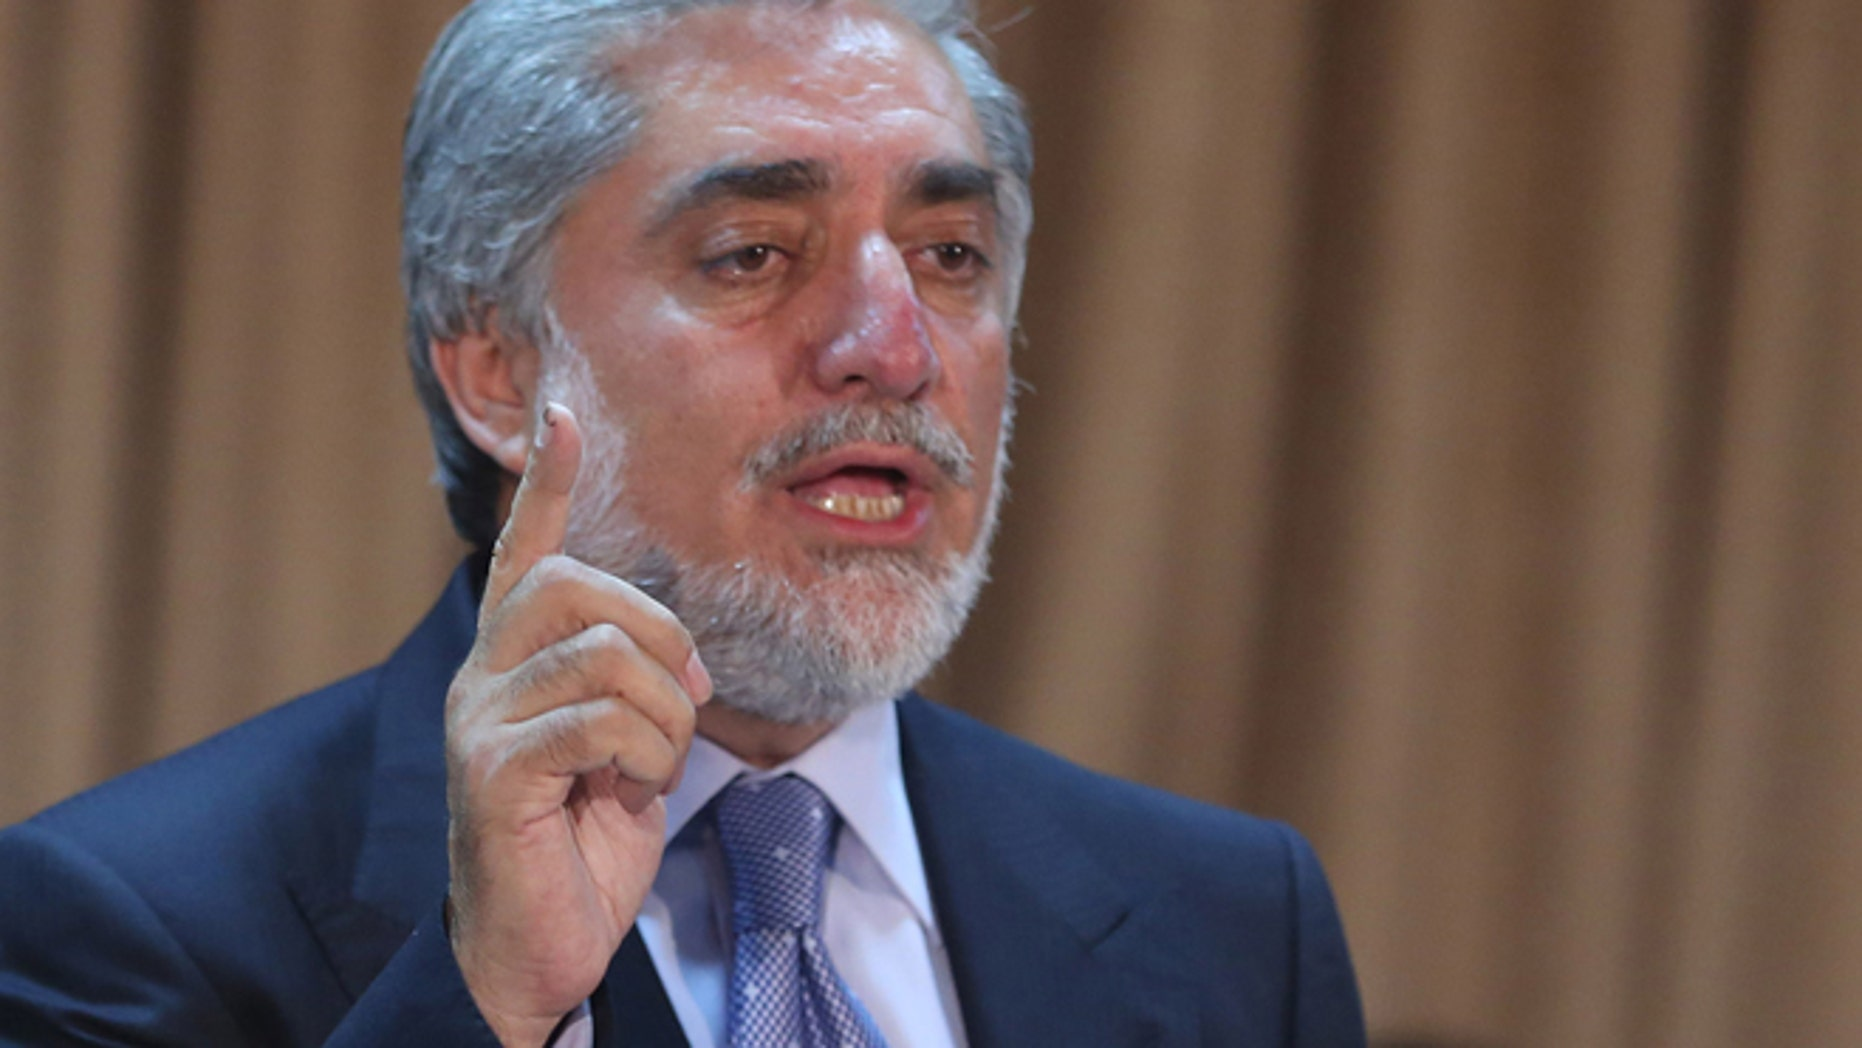 Afghanistan's presidential candidate Abdullah Abdullah speaks during a news conference in Kabul, Afghanistan, Sunday, June 15, 2014. The two candidates, former Foreign Minister Abdullah Abdullah and former Finance Minister Ashraf Ghani Ahmadzai, have both vowed to improve ties with the West. (AP Photo/Massoud Hossaini)